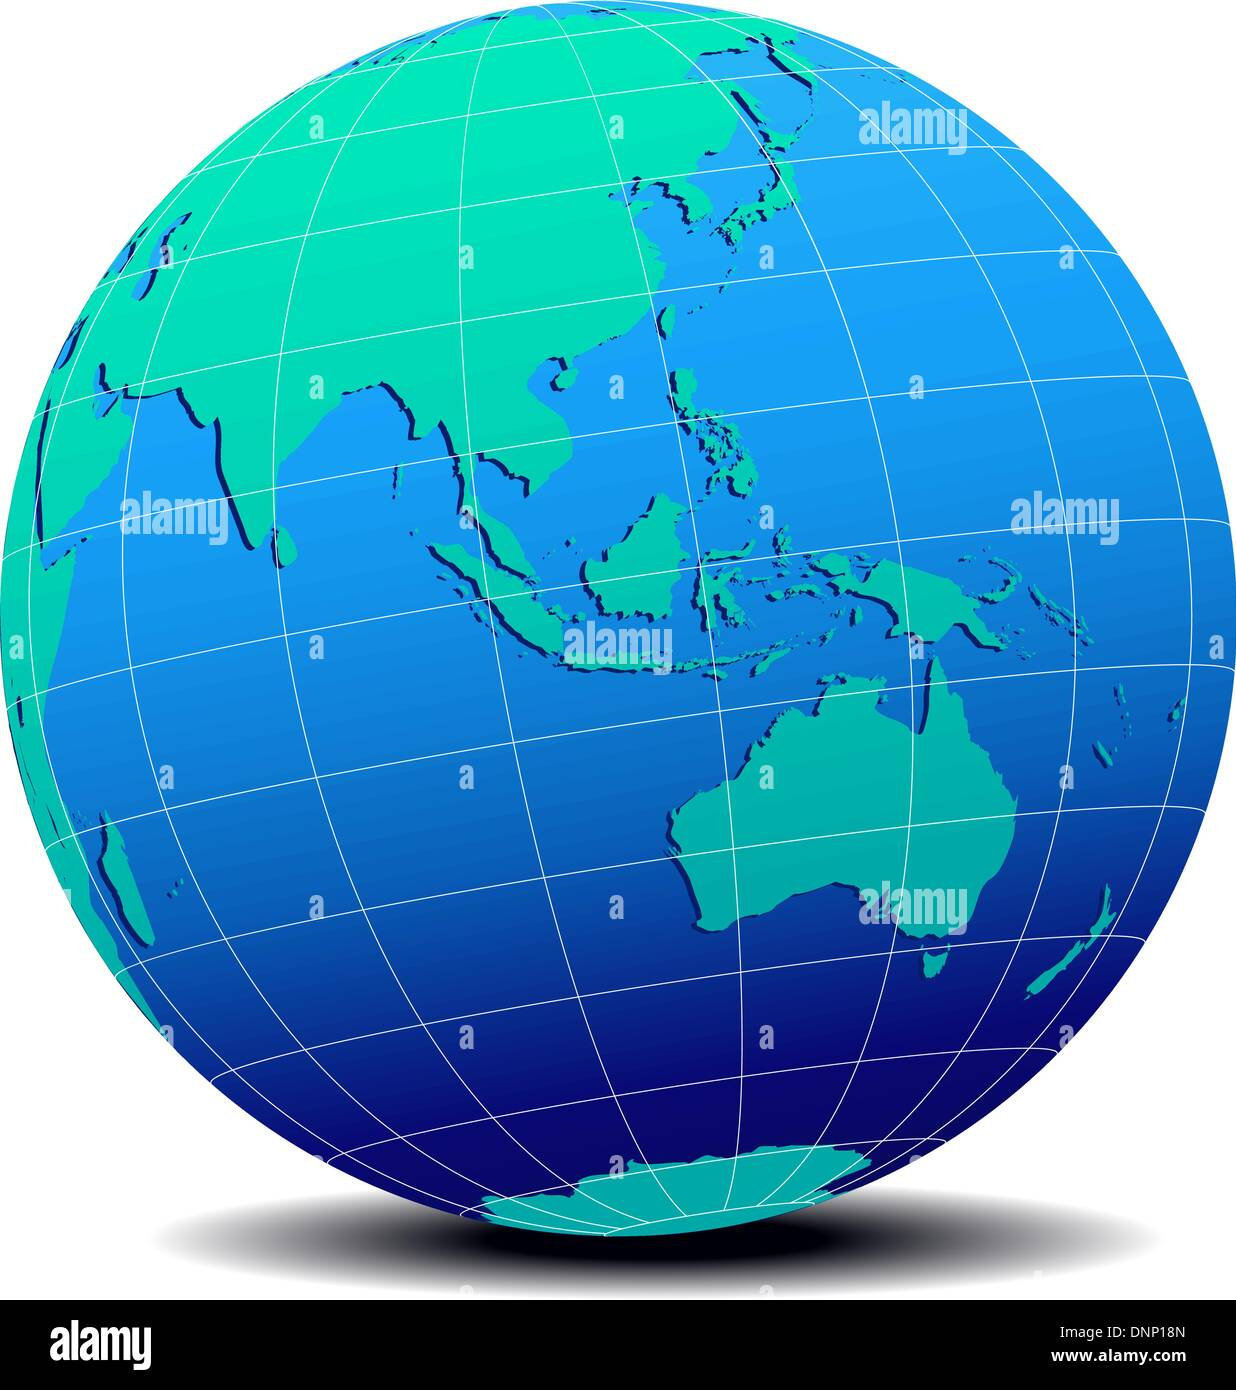 Vector map icon of the world in globe form australia asia stock vector map icon of the world in globe form australia asia malaysia philippines gumiabroncs Images